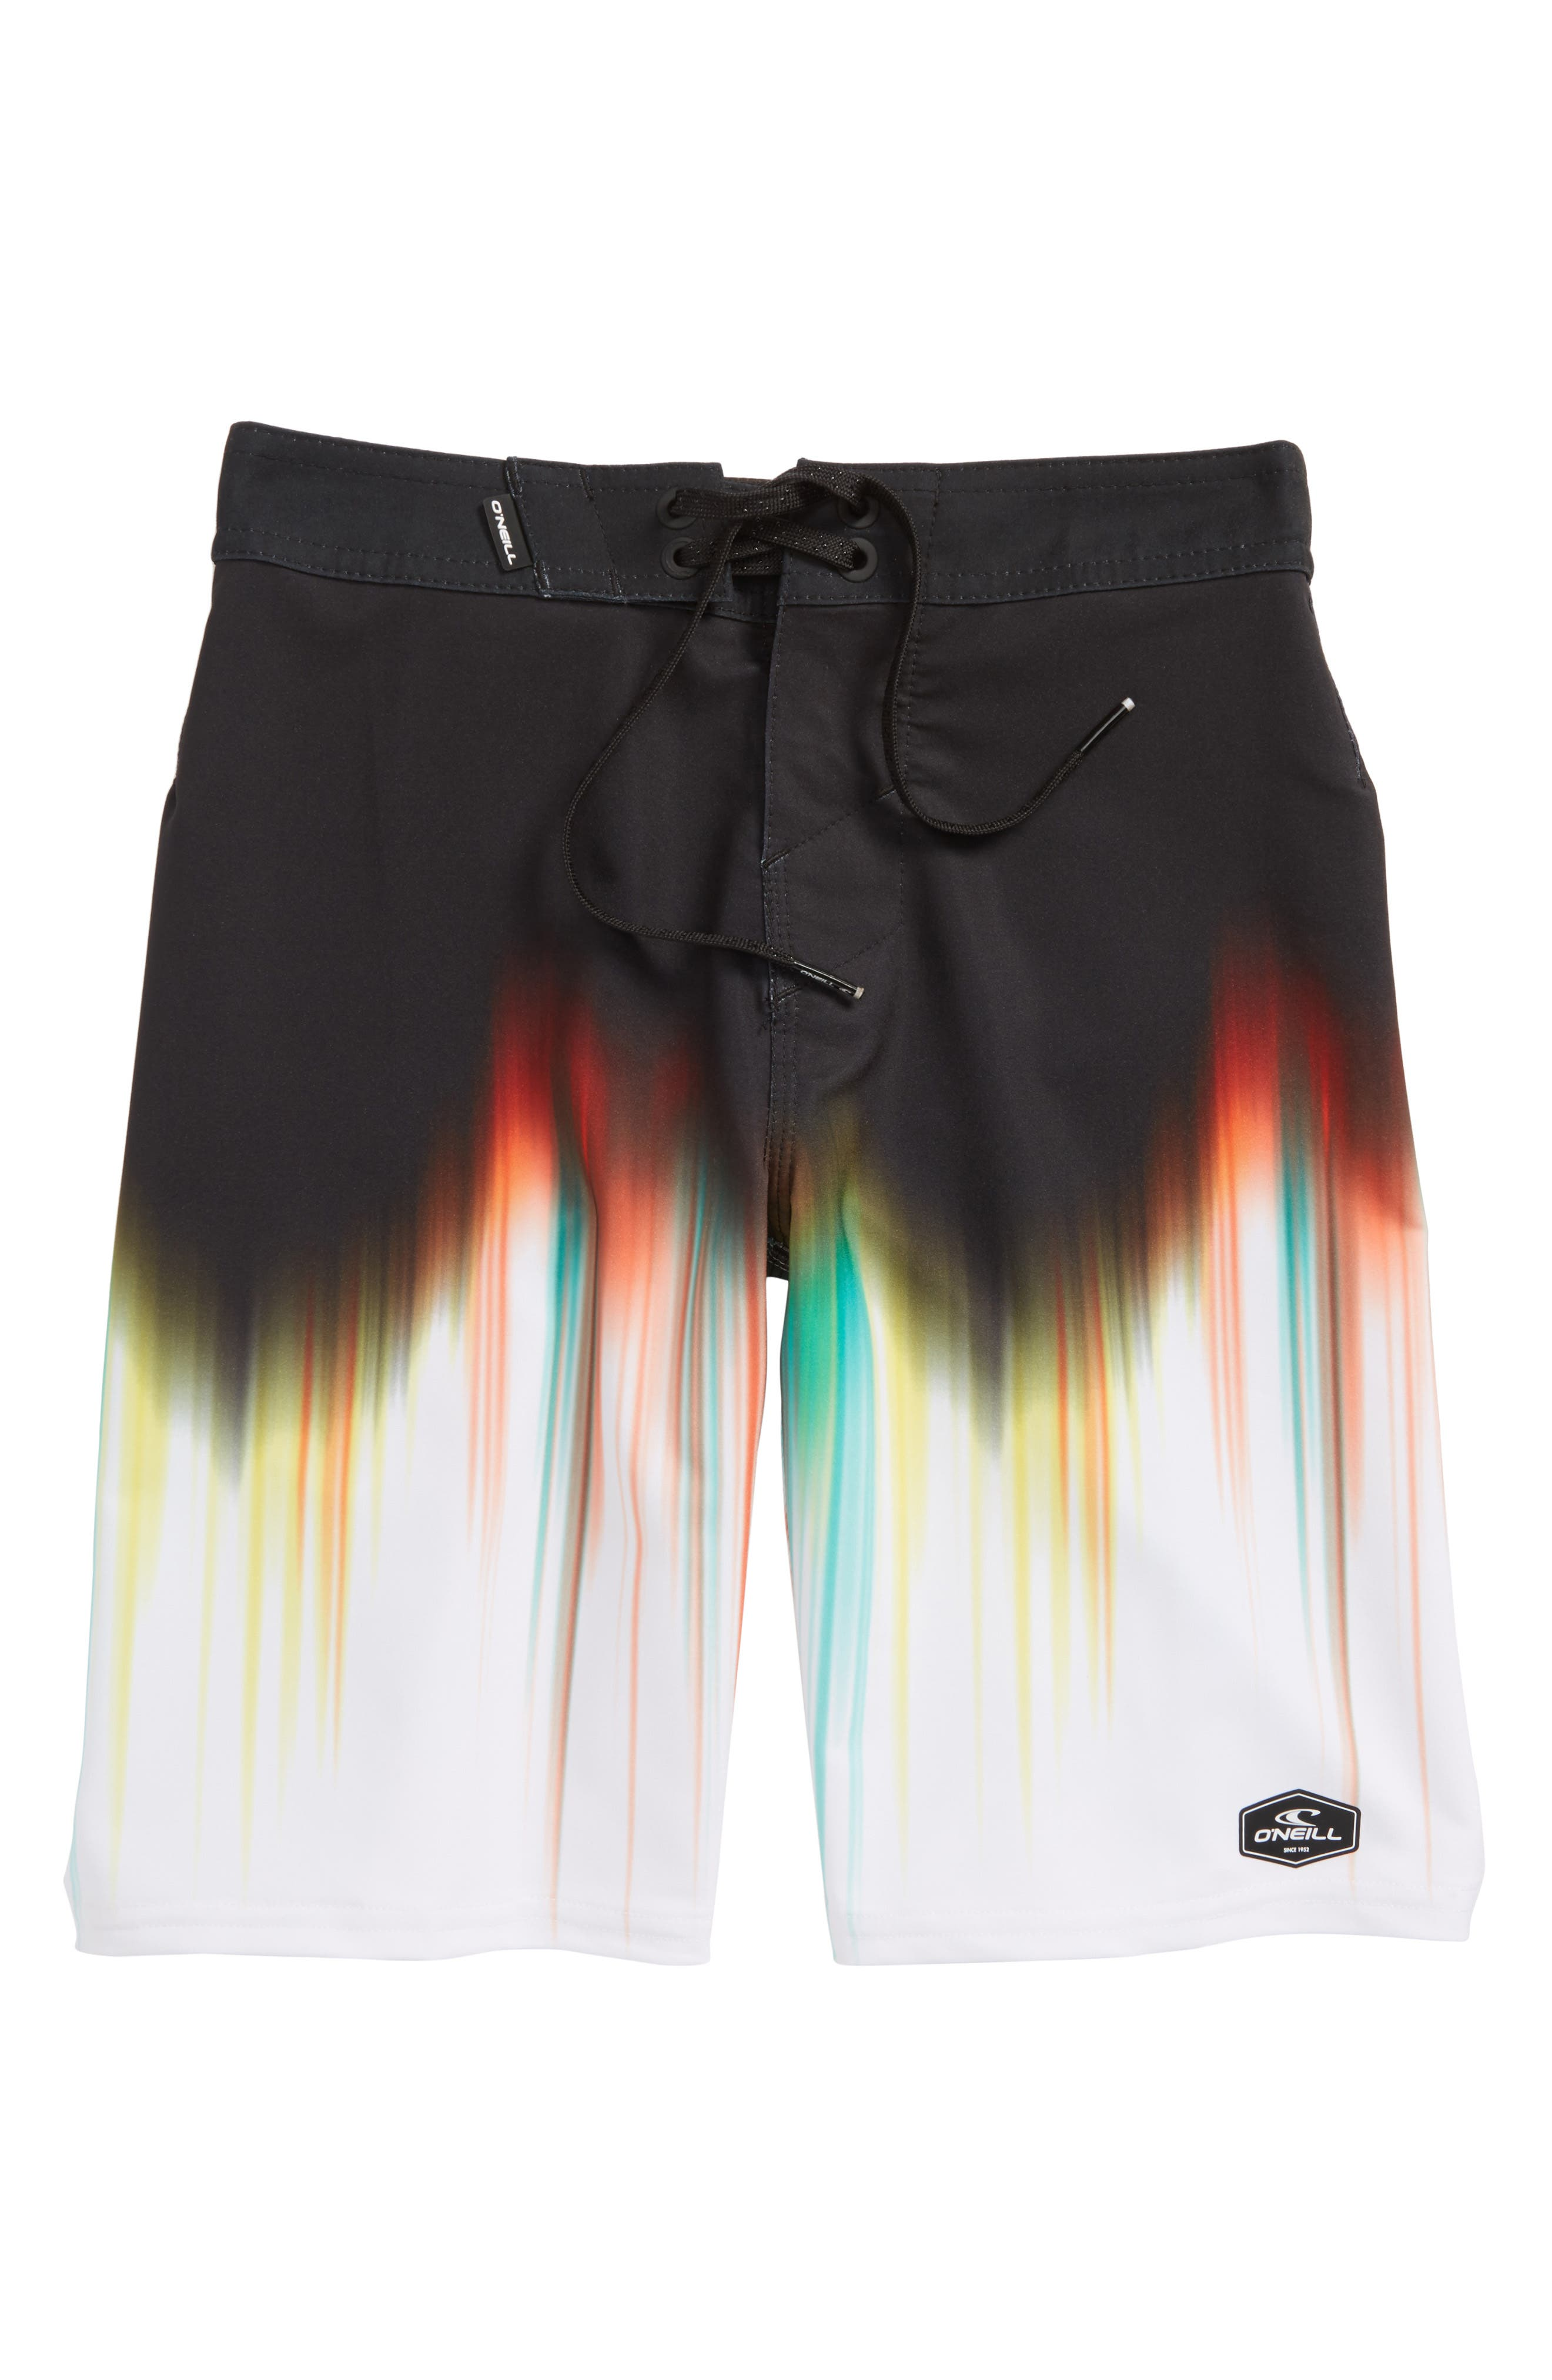 Hyperfreak Drippin Board Shorts,                             Main thumbnail 1, color,                             Black